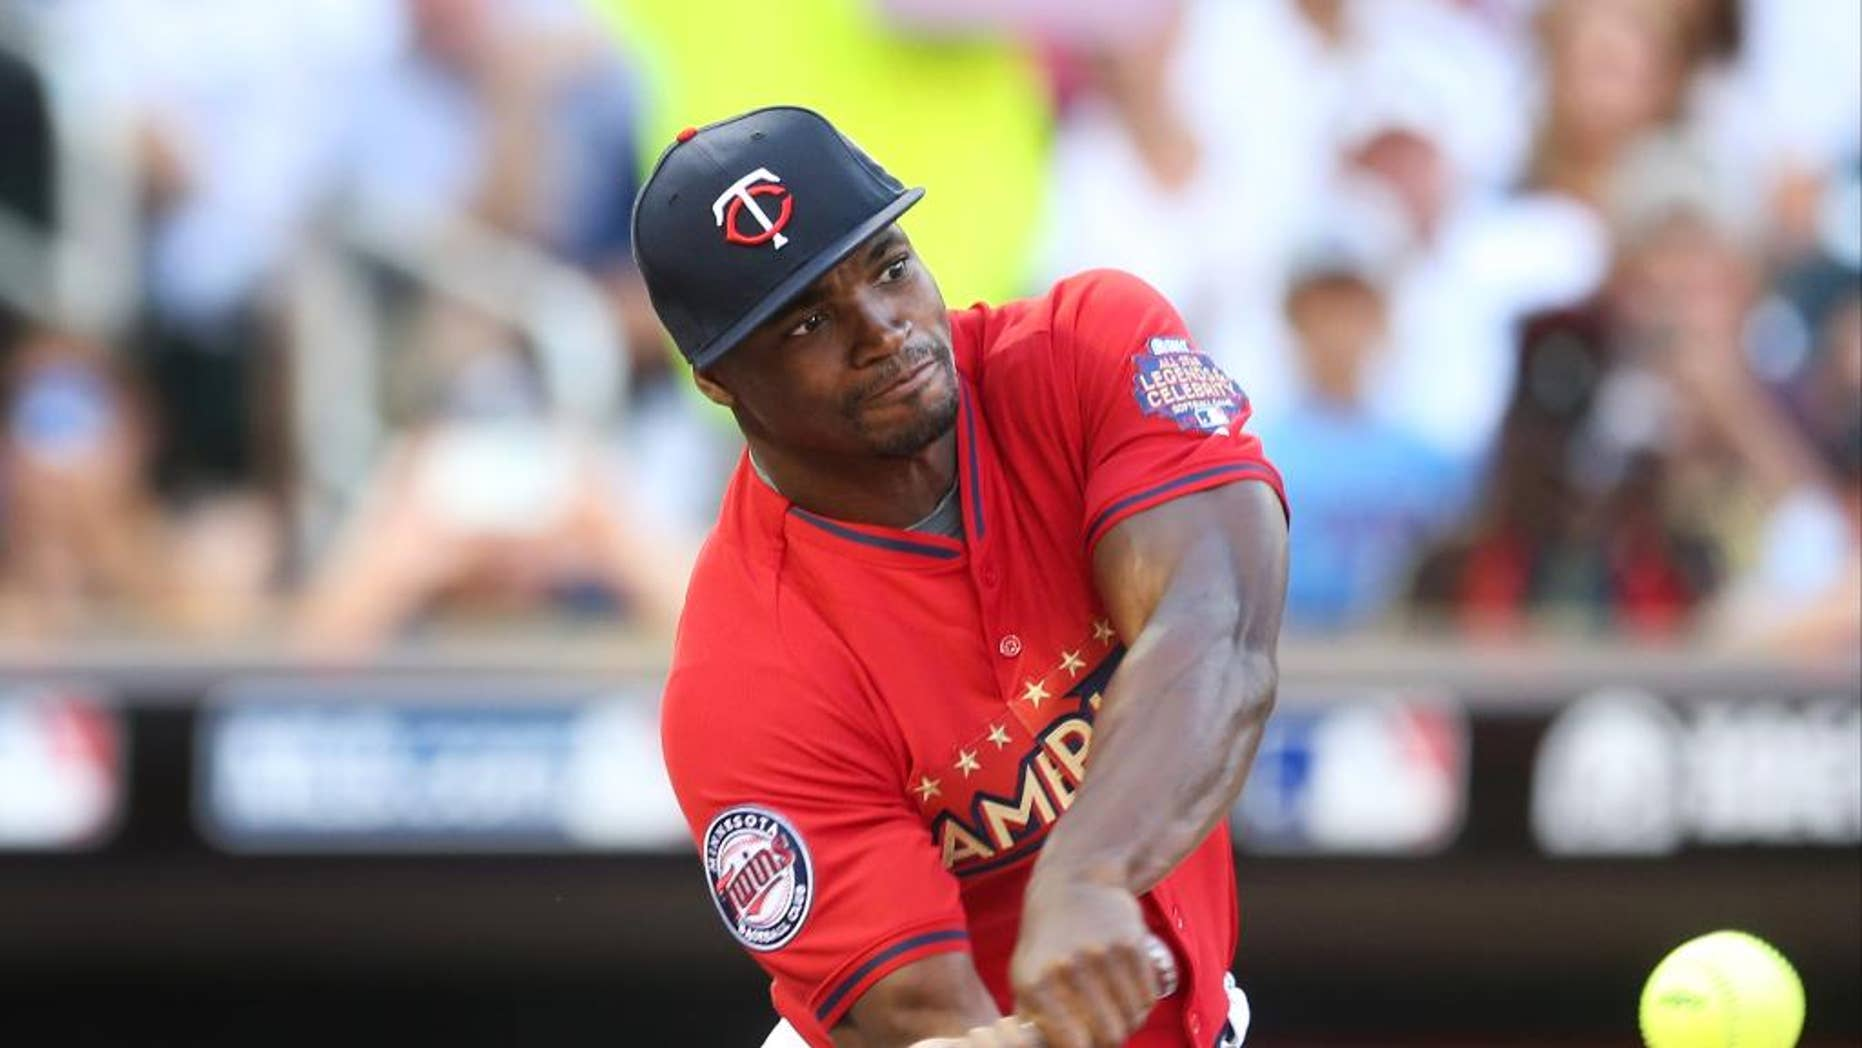 Minnesota Vikings running back Adrian Peterson bats during the All-Star Legends & Celebrity Softball Game, Sunday, July 13, 2014, in Minneapolis. (AP Photo/Jim Mone)